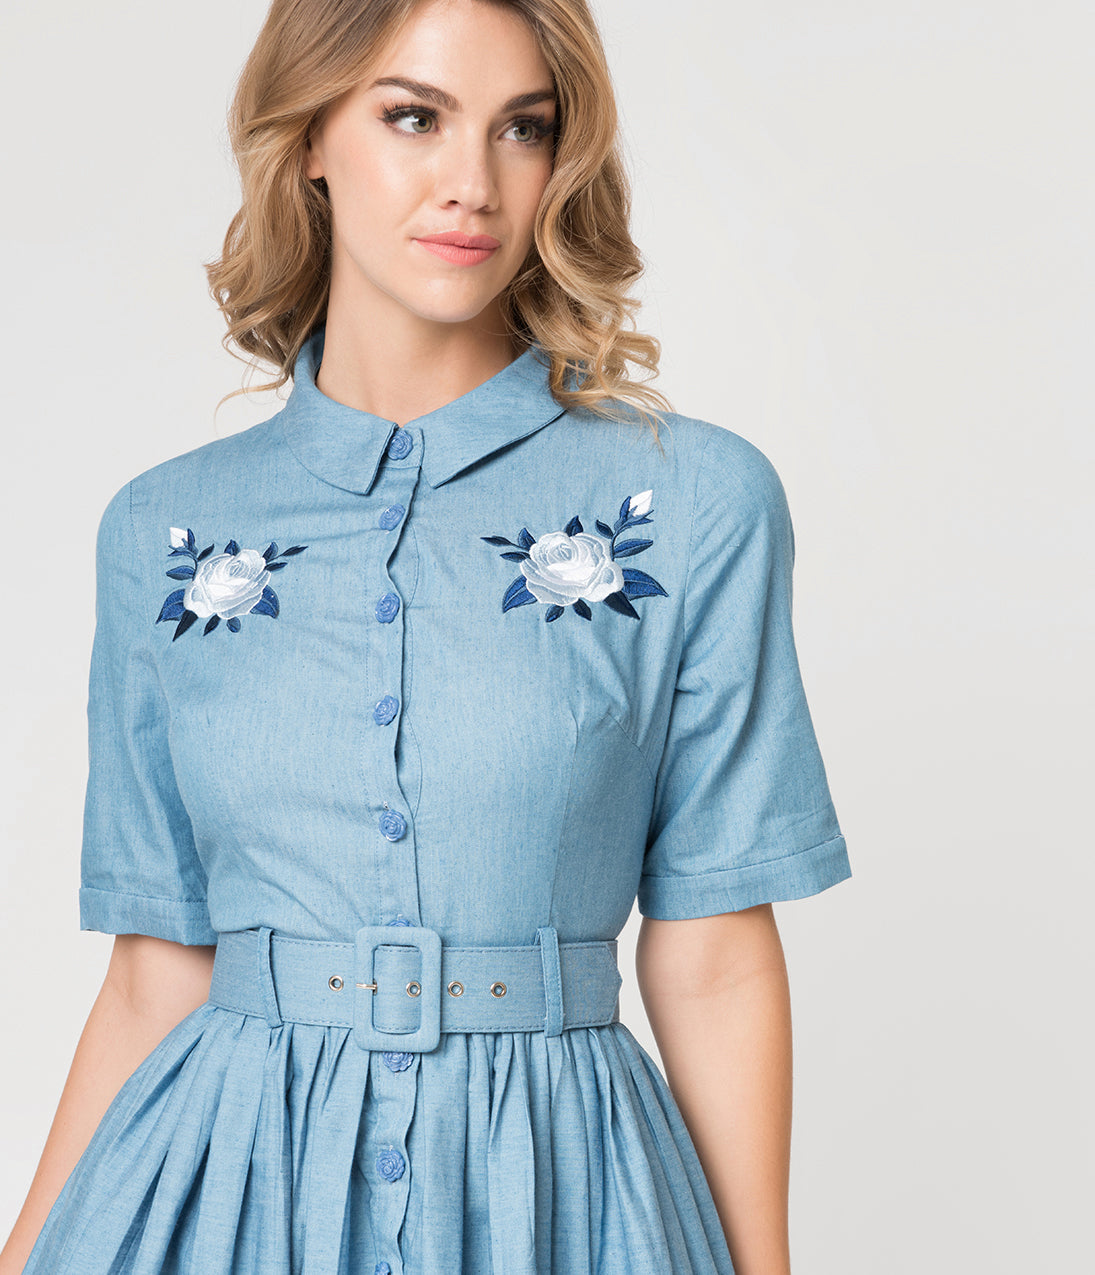 Pin Up Dresses | Pinup Clothing & Fashion Collectif 1950S Style Denim Blue Western Rose Aria Shirtdress $92.00 AT vintagedancer.com